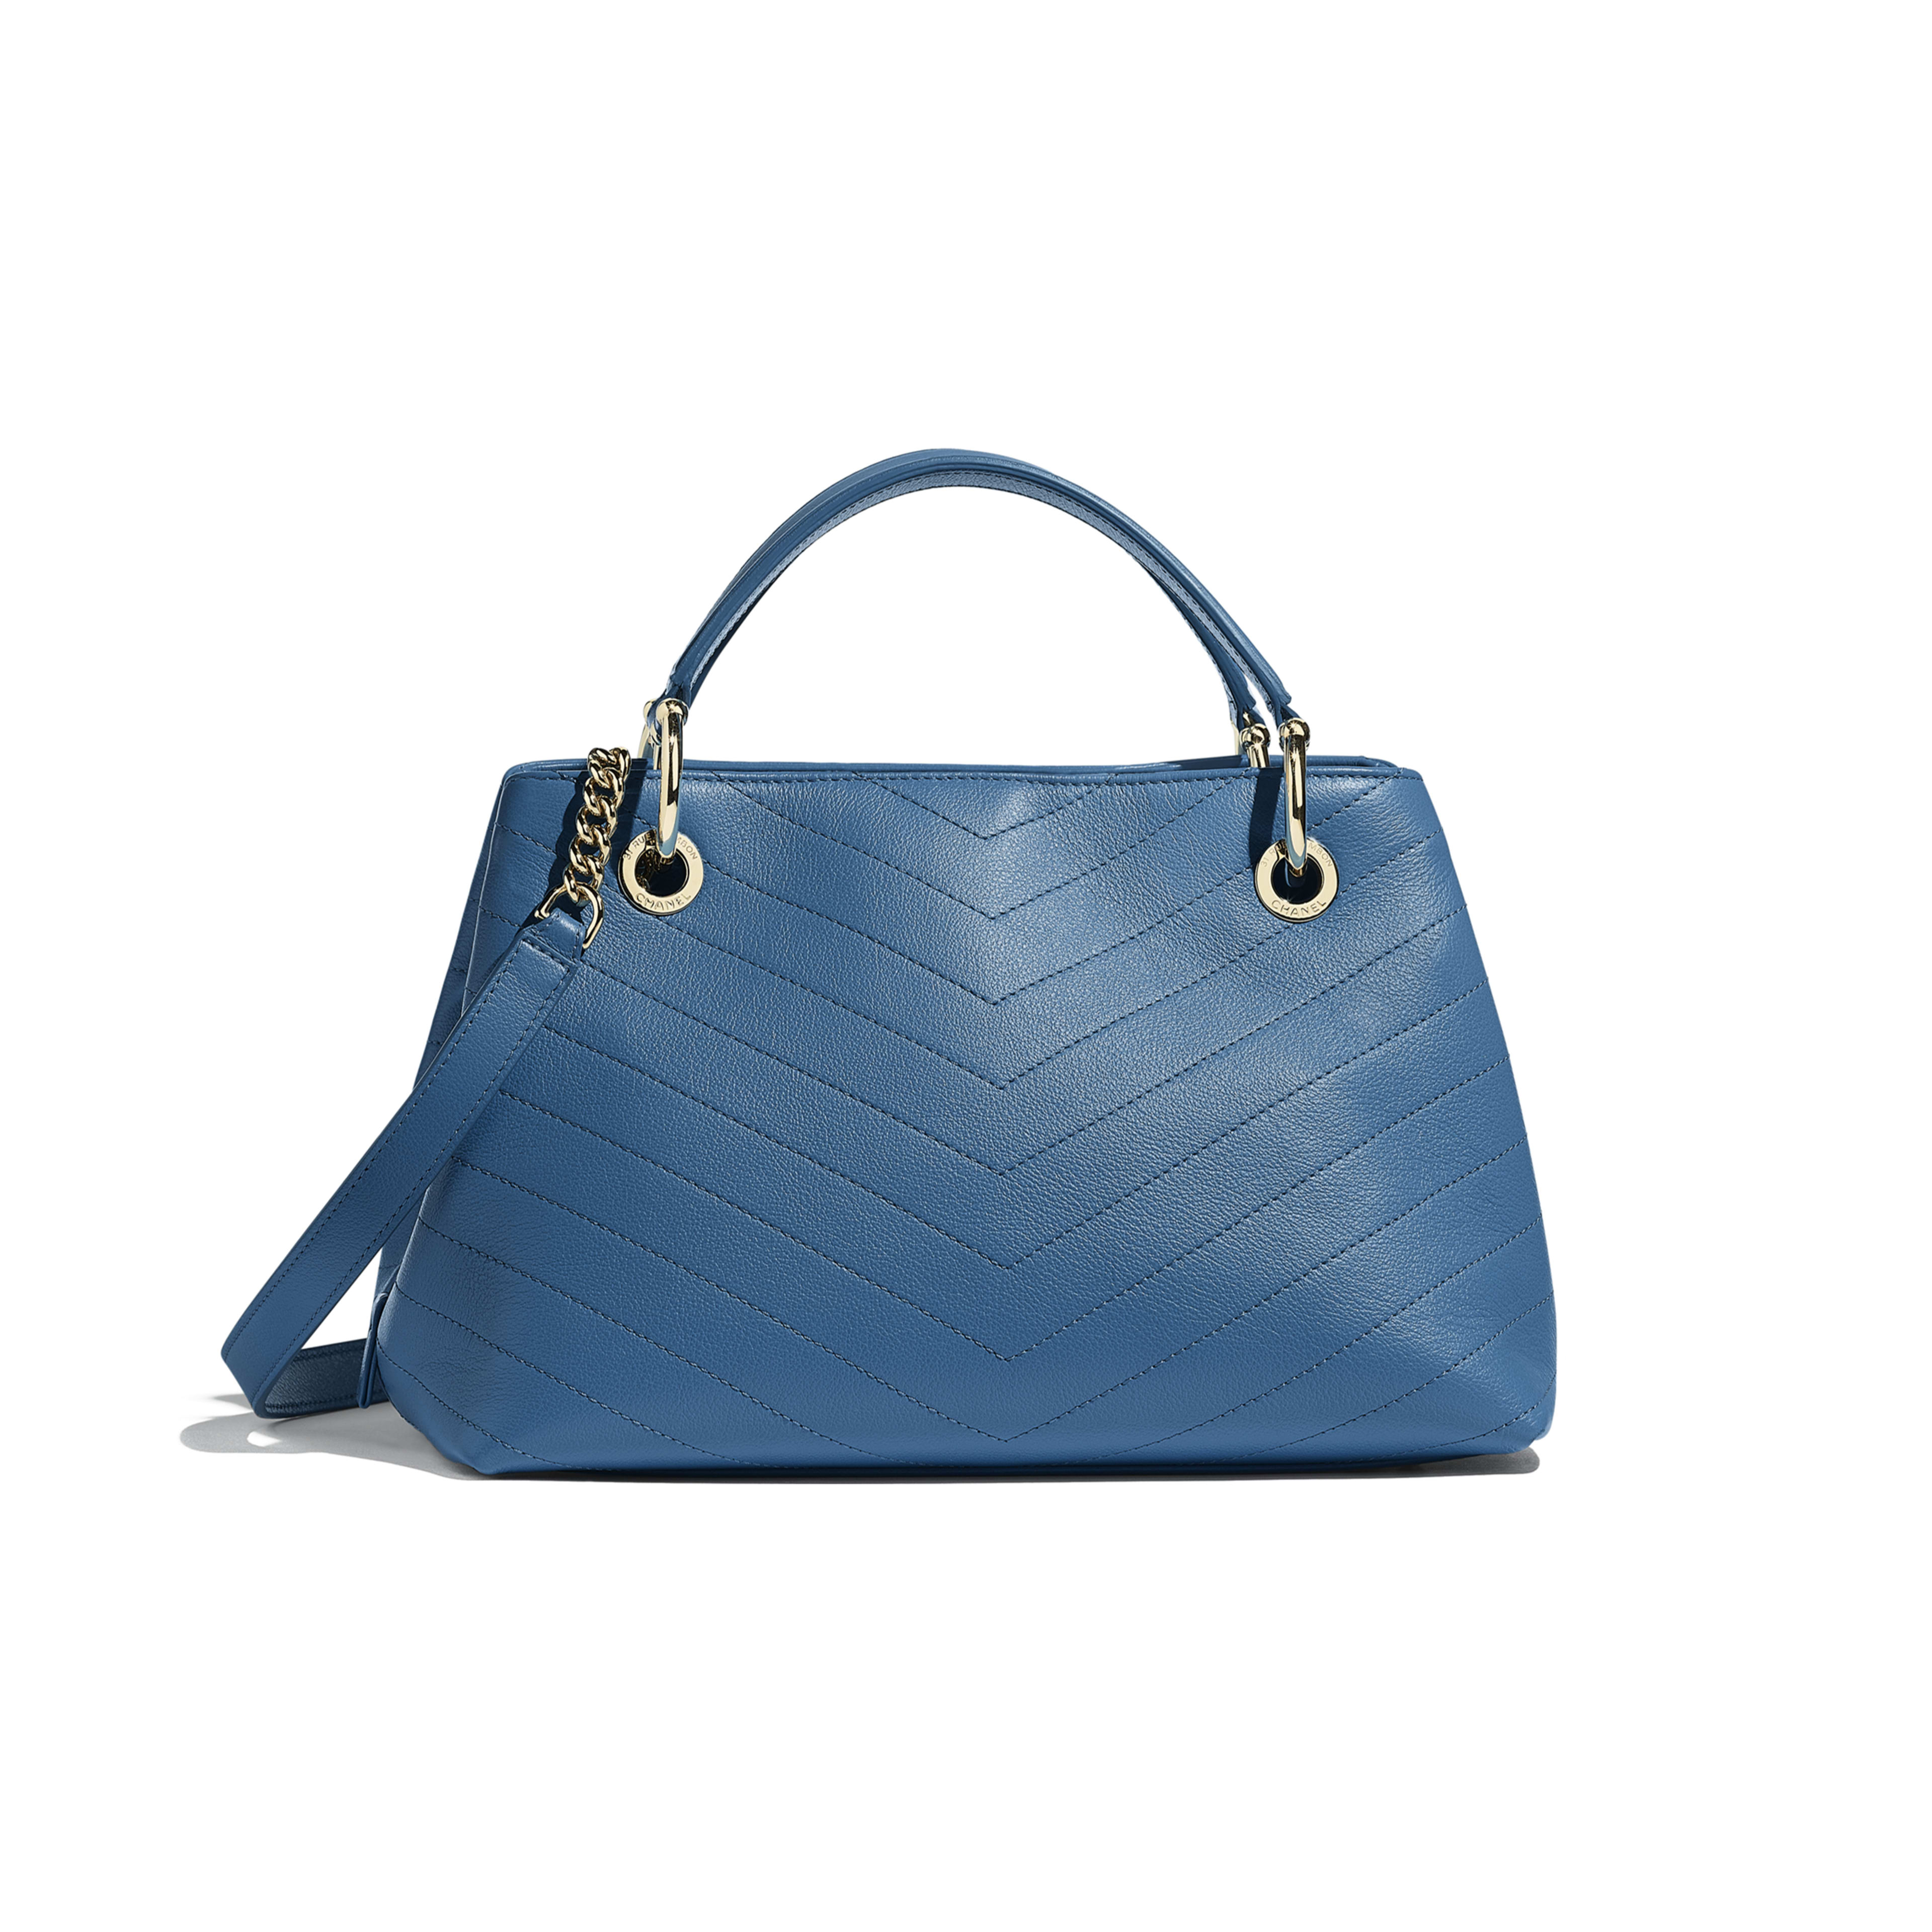 Small Zipped Shopping Bag - Blue - Grained Calfskin & Gold-Tone Metal - Alternative view - see full sized version